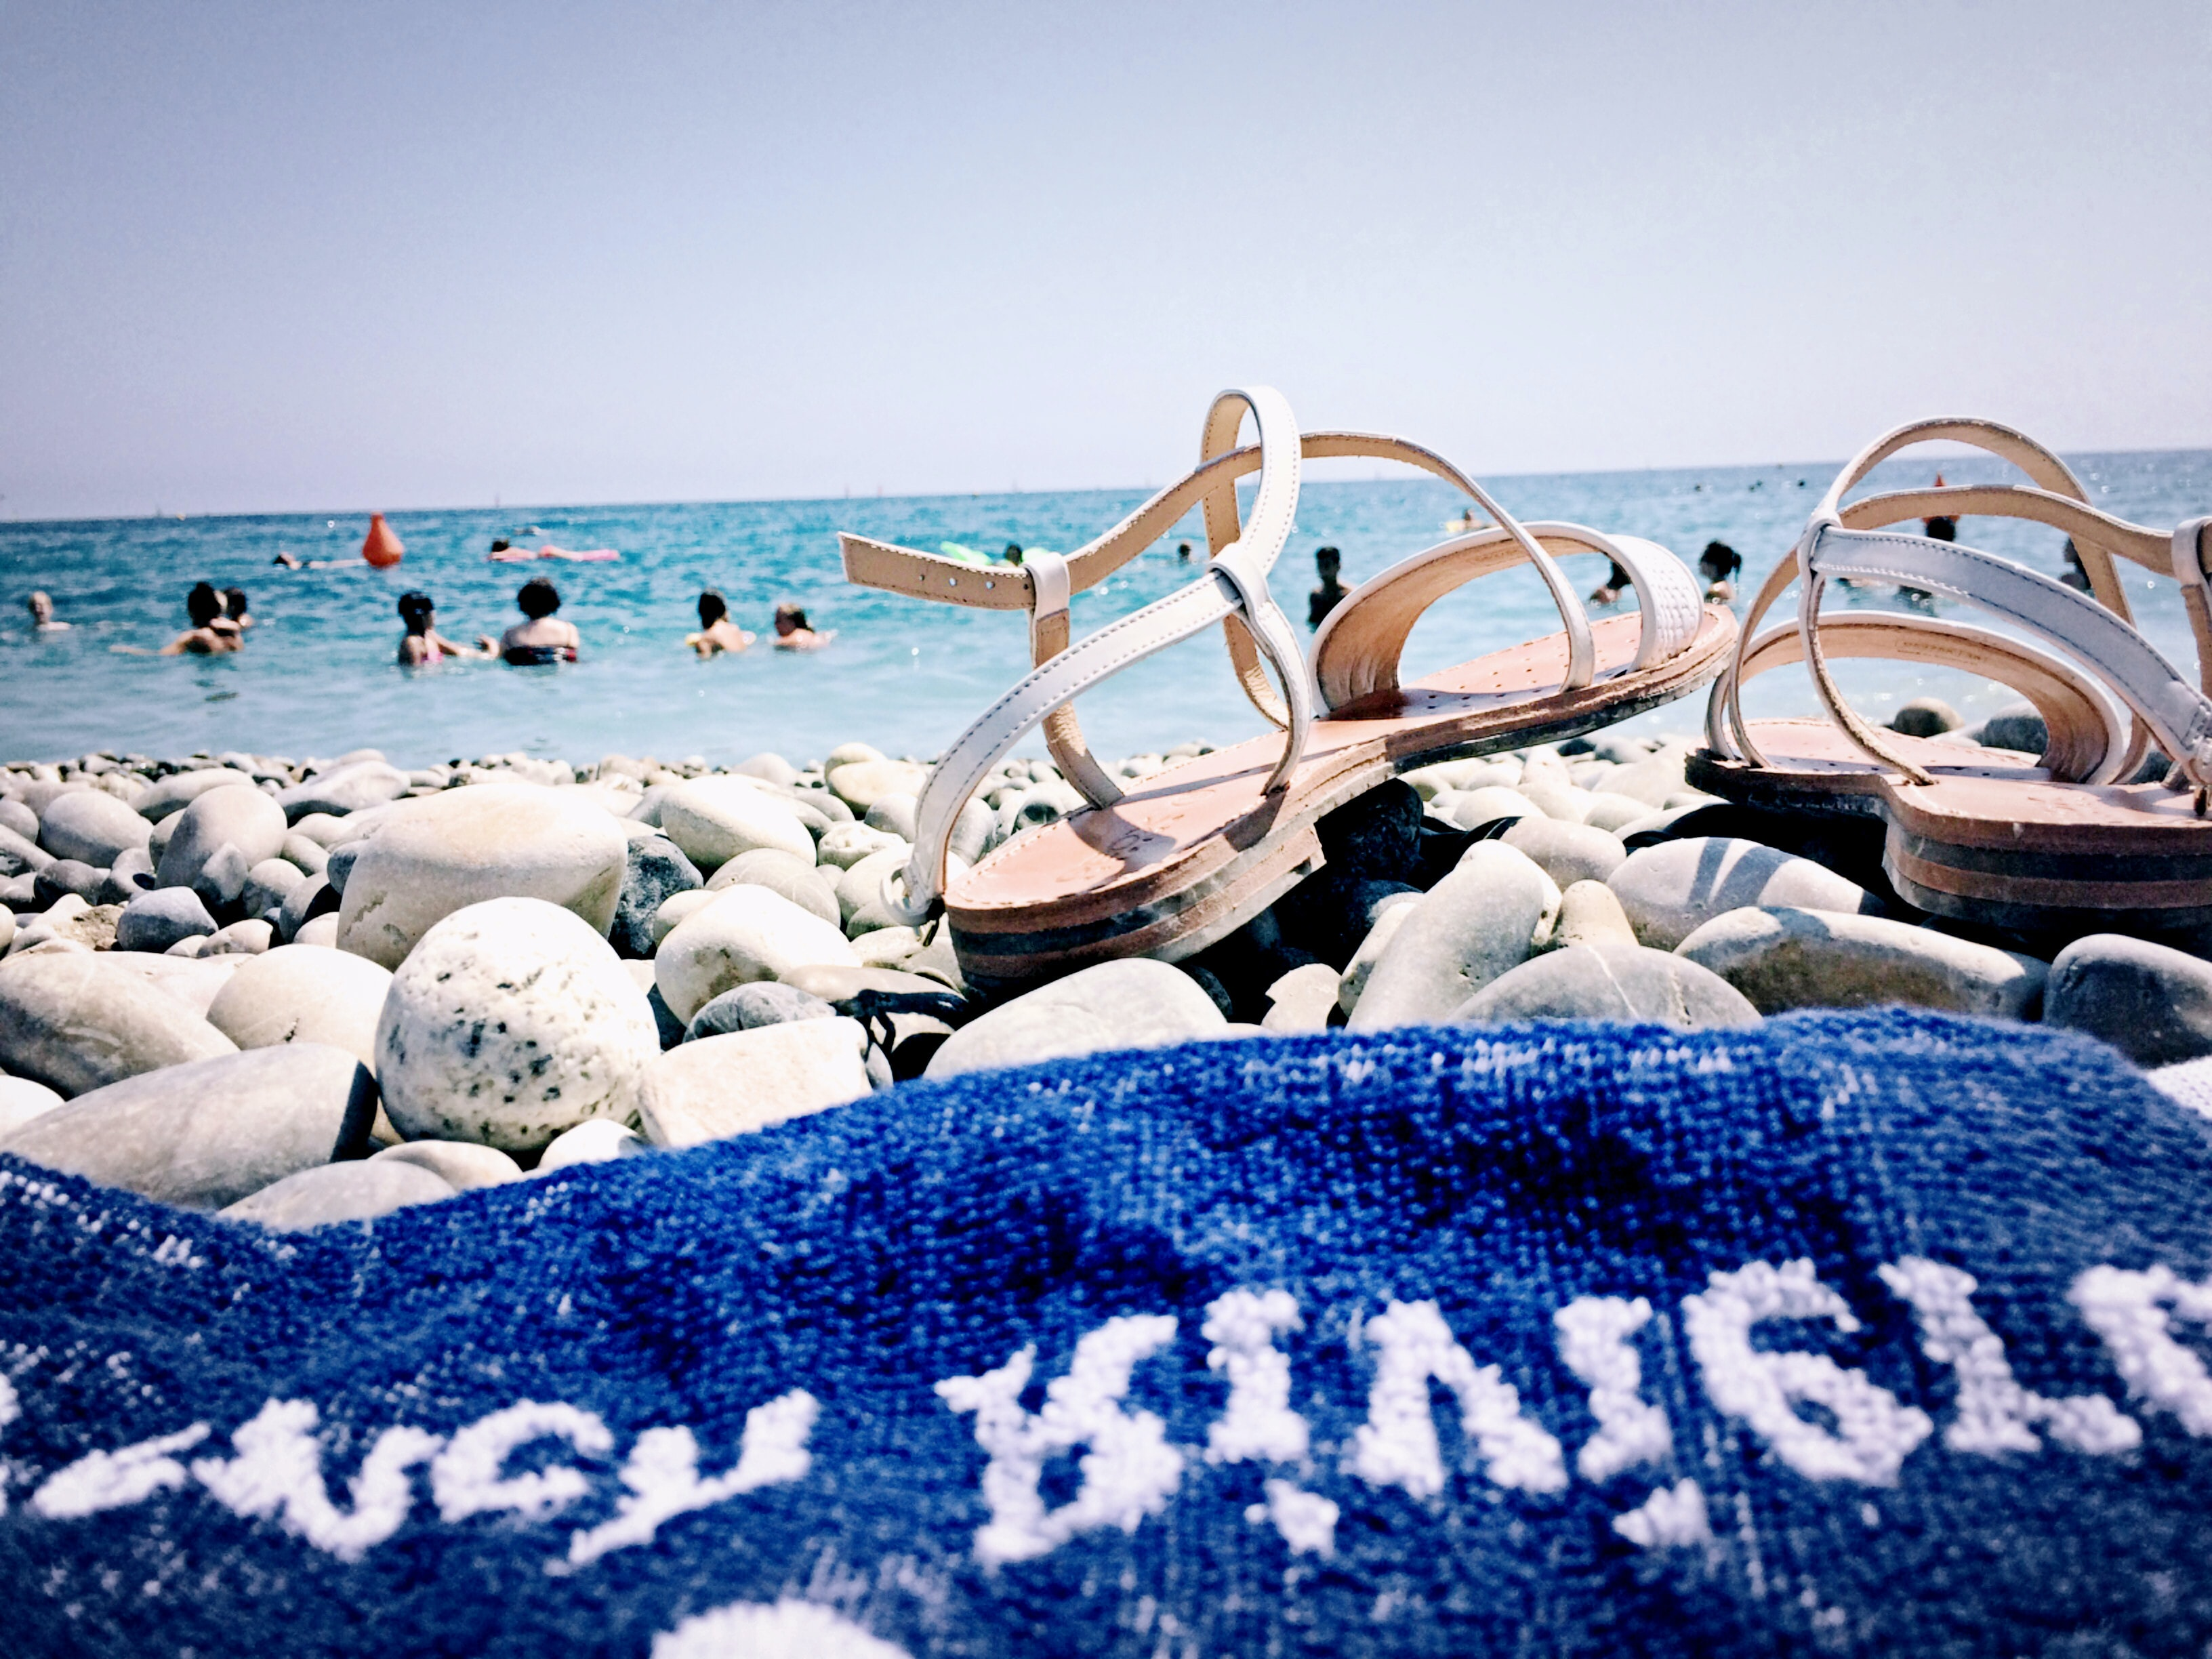 A close-up of a blue towel and a pair of sandals on a rocky beach